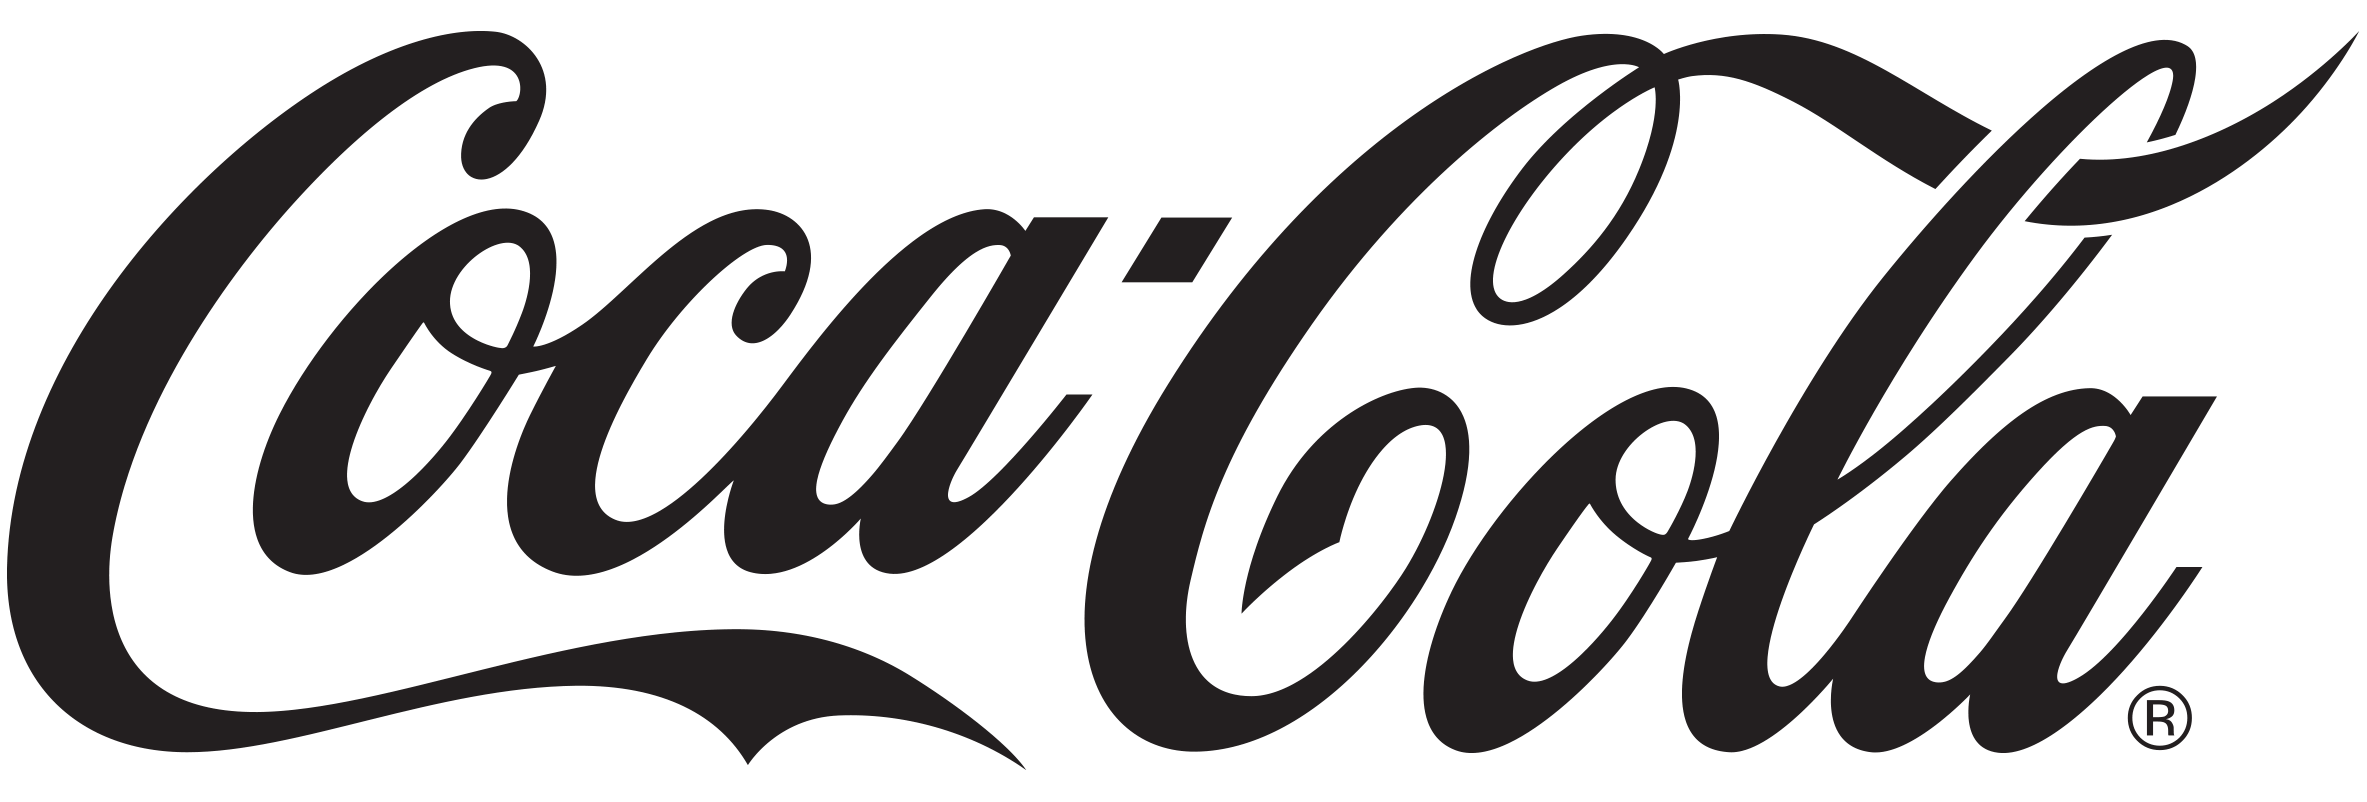 Coca Cola Cammeo Black